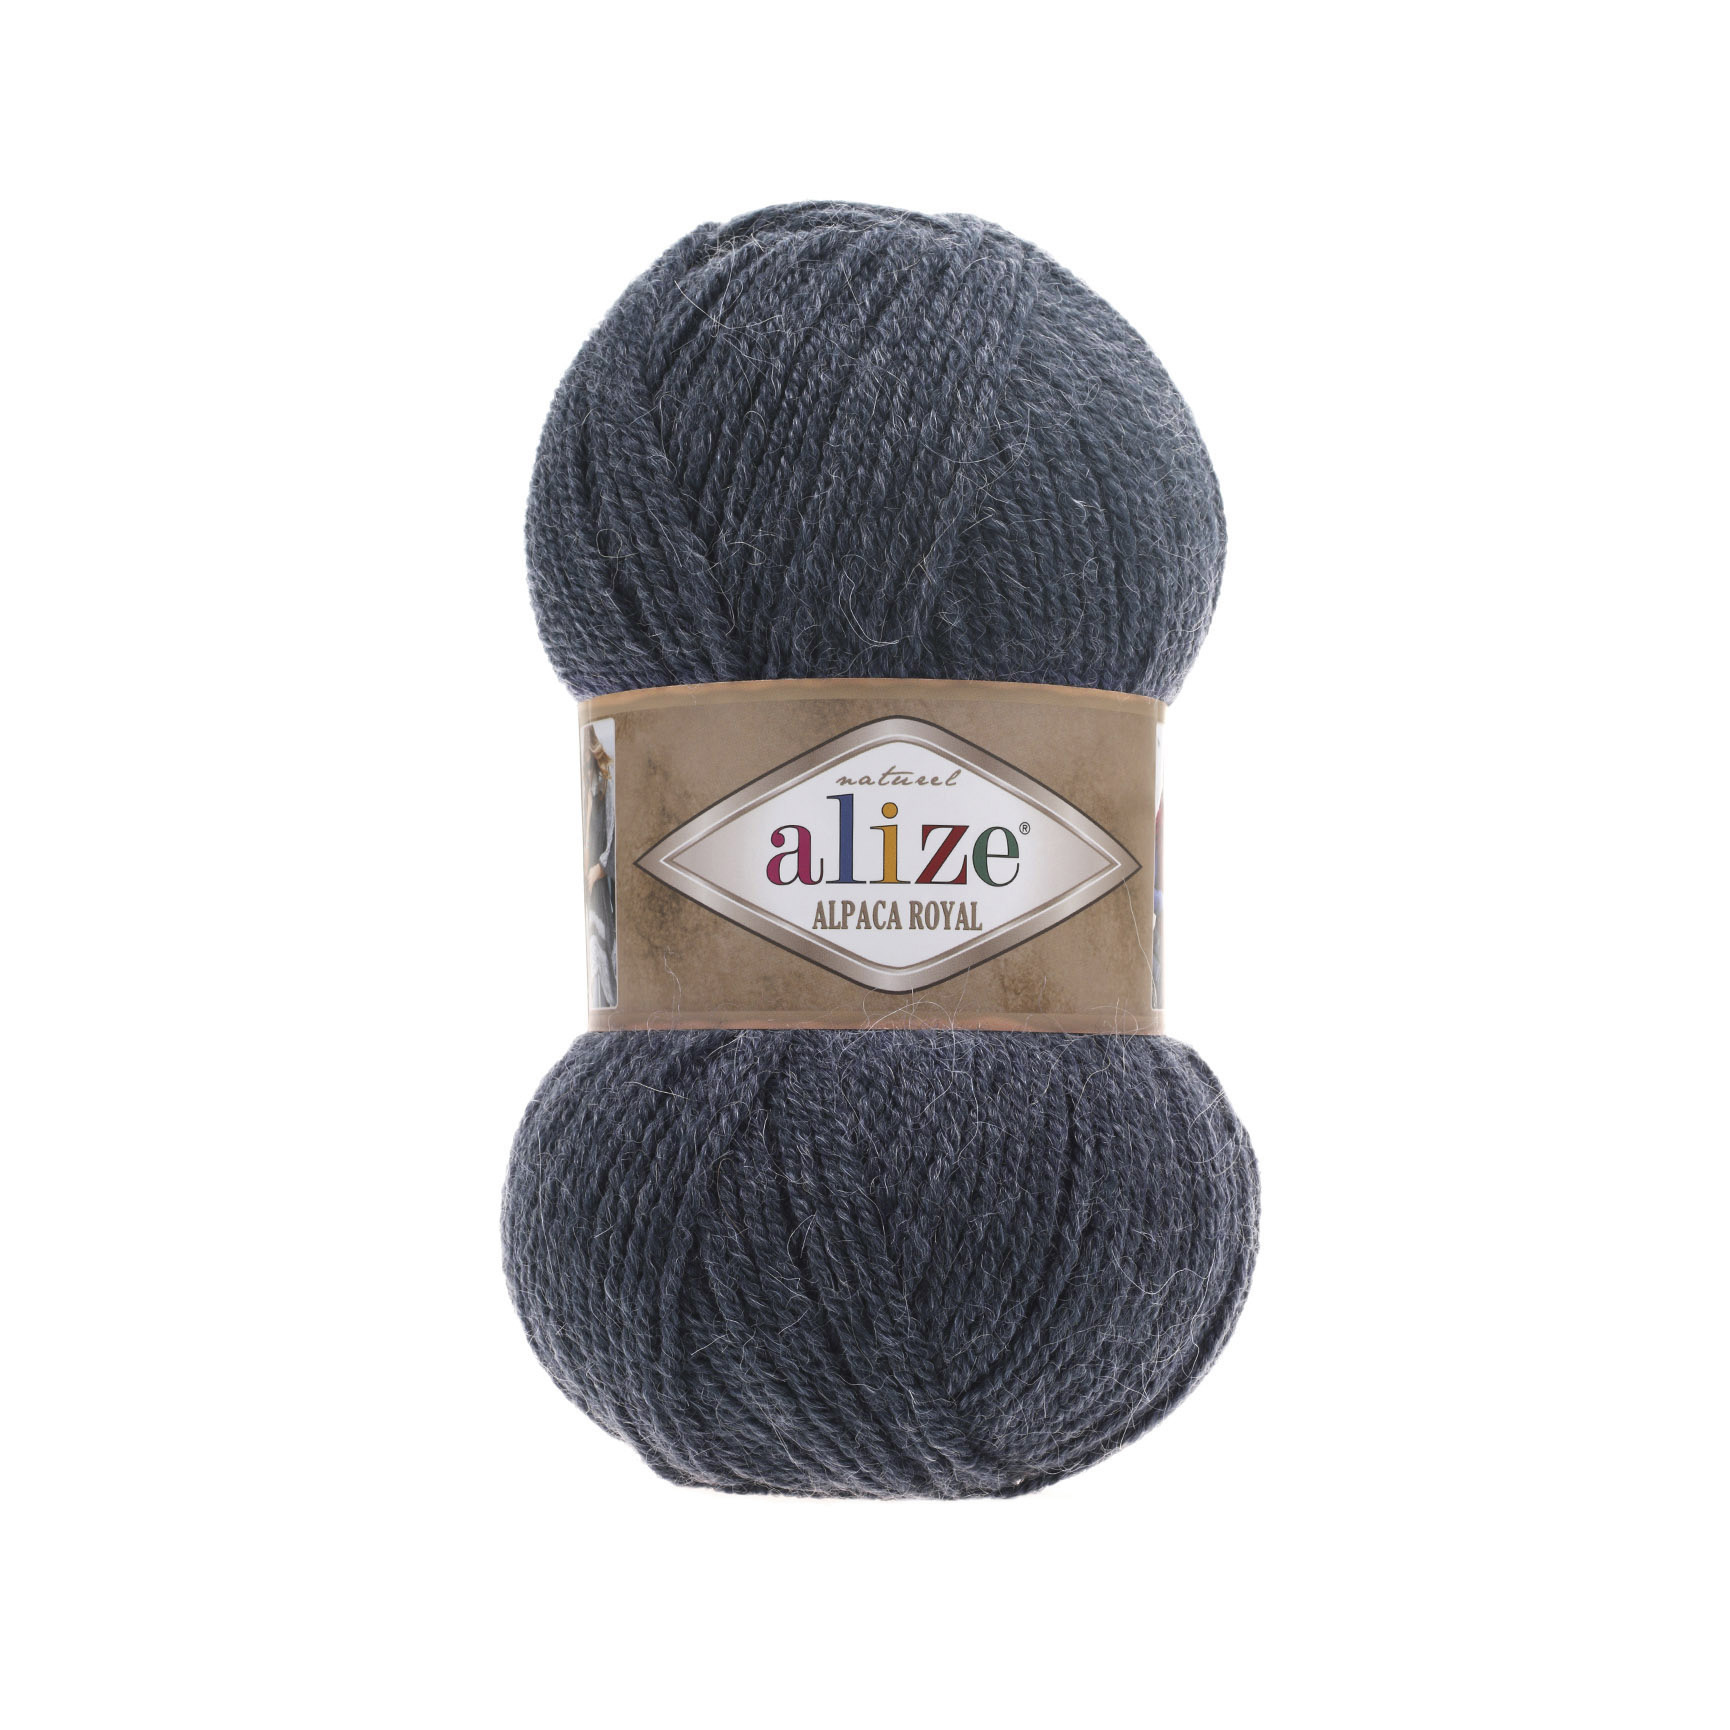 Пряжа Alize Alpaca Royal джинс меланж 203